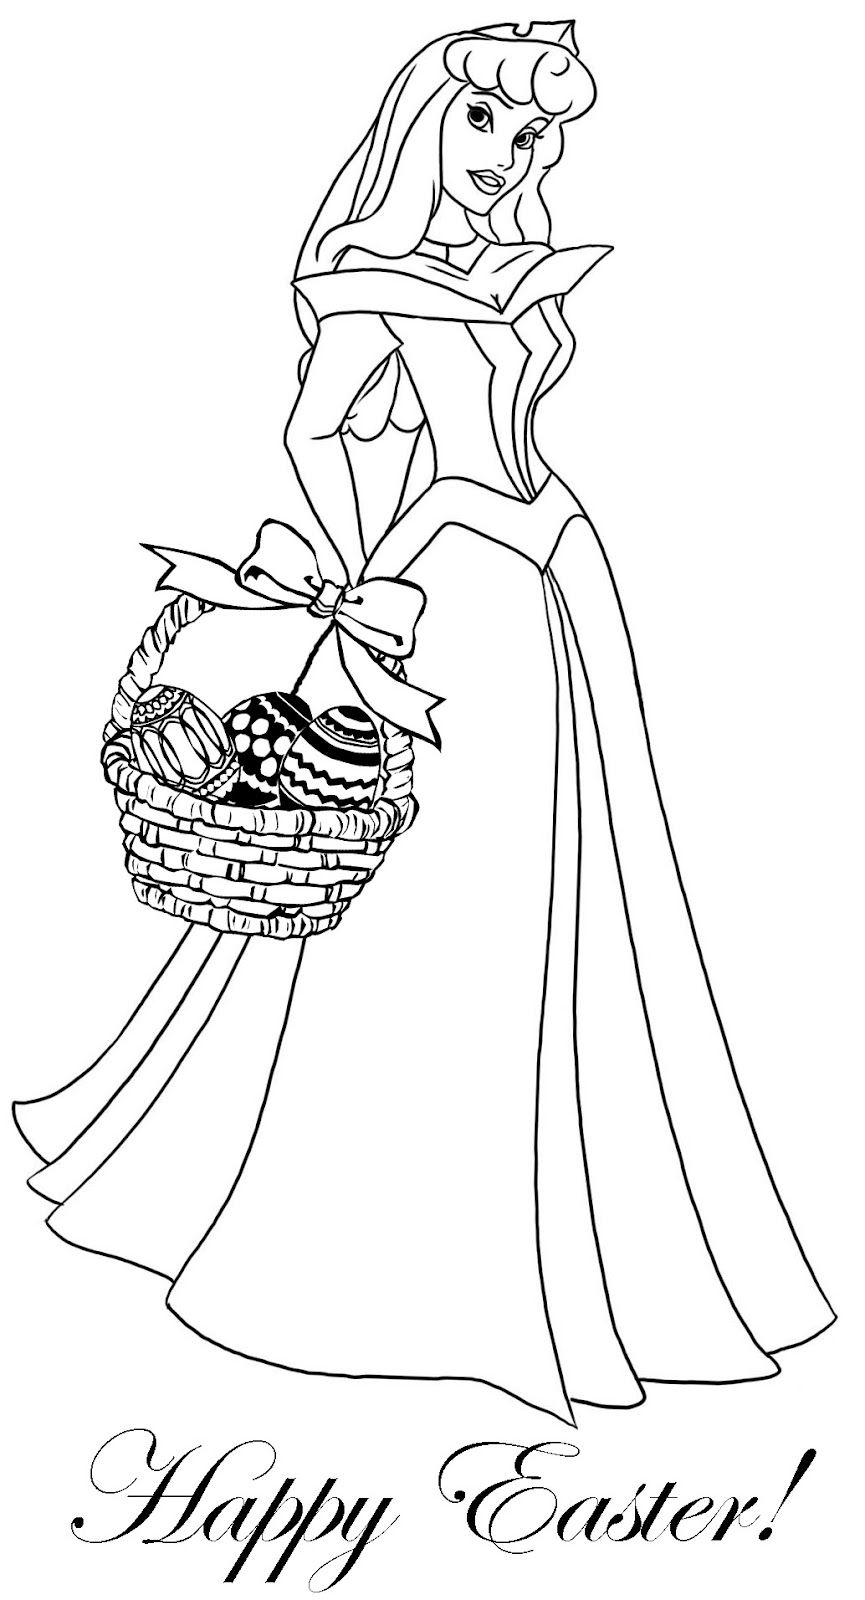 Free coloring pages disney princesses - Princess Coloring Pages Easter Theme Coloring Page